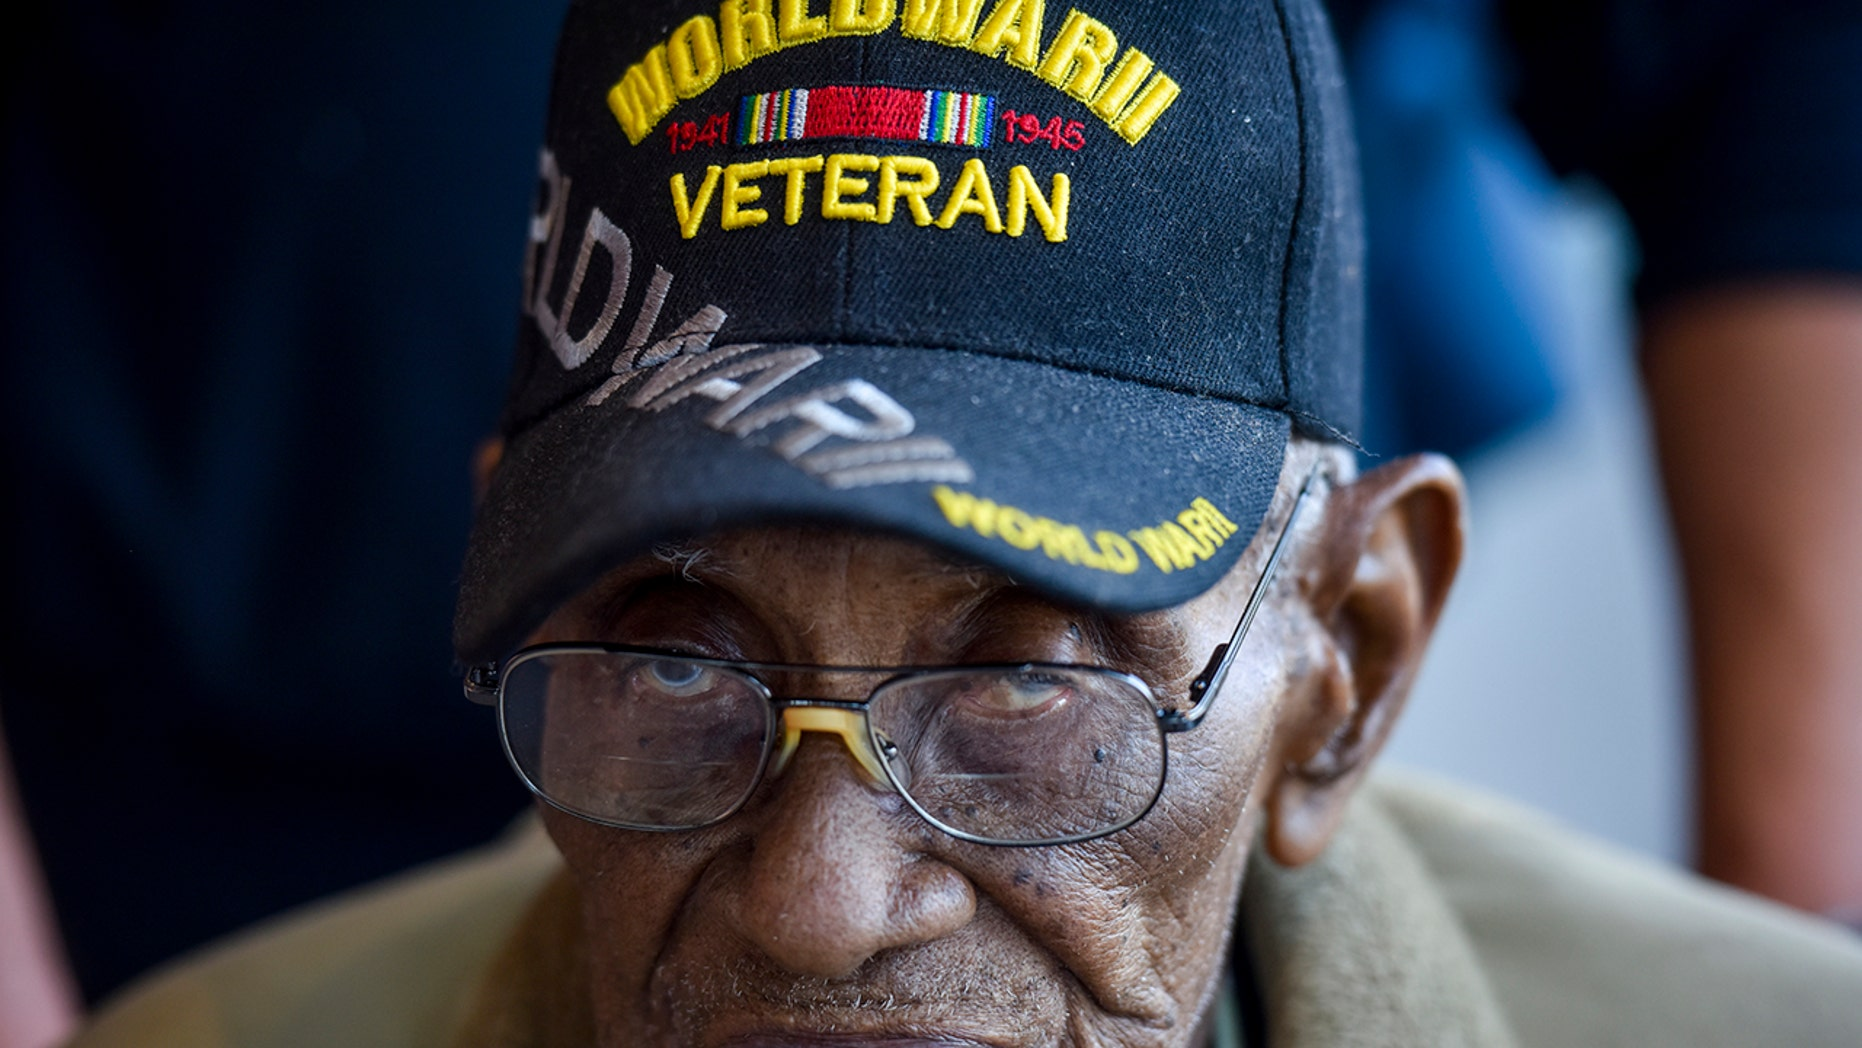 Richard Overton, 112, visits the National Museum of African American History and Culture, April 8, 2018, in Washington, D.C. (Getty Images)